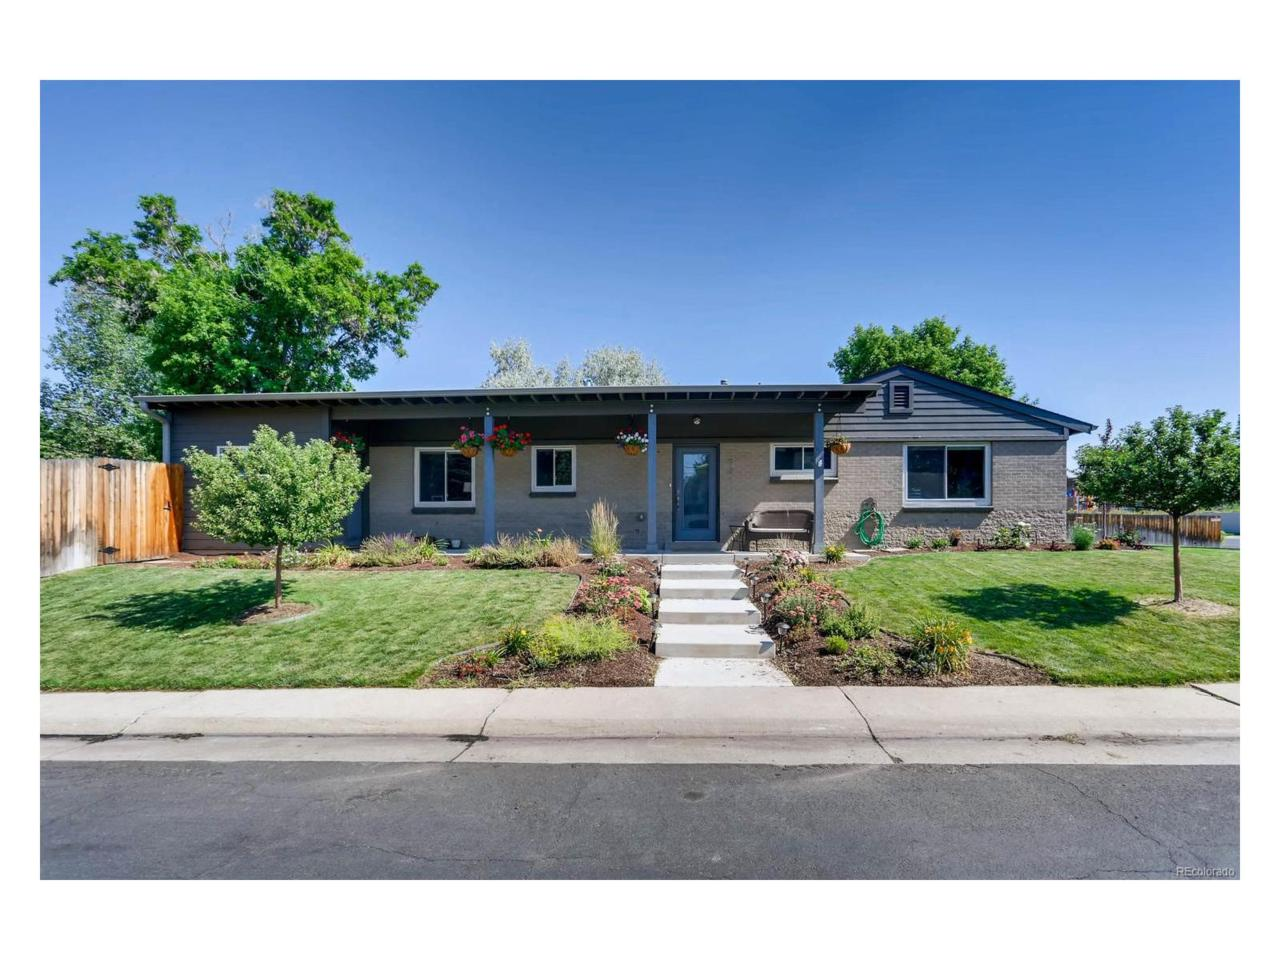 901 Glencoe Street, Denver, CO 80220 (MLS #4341632) :: 8z Real Estate